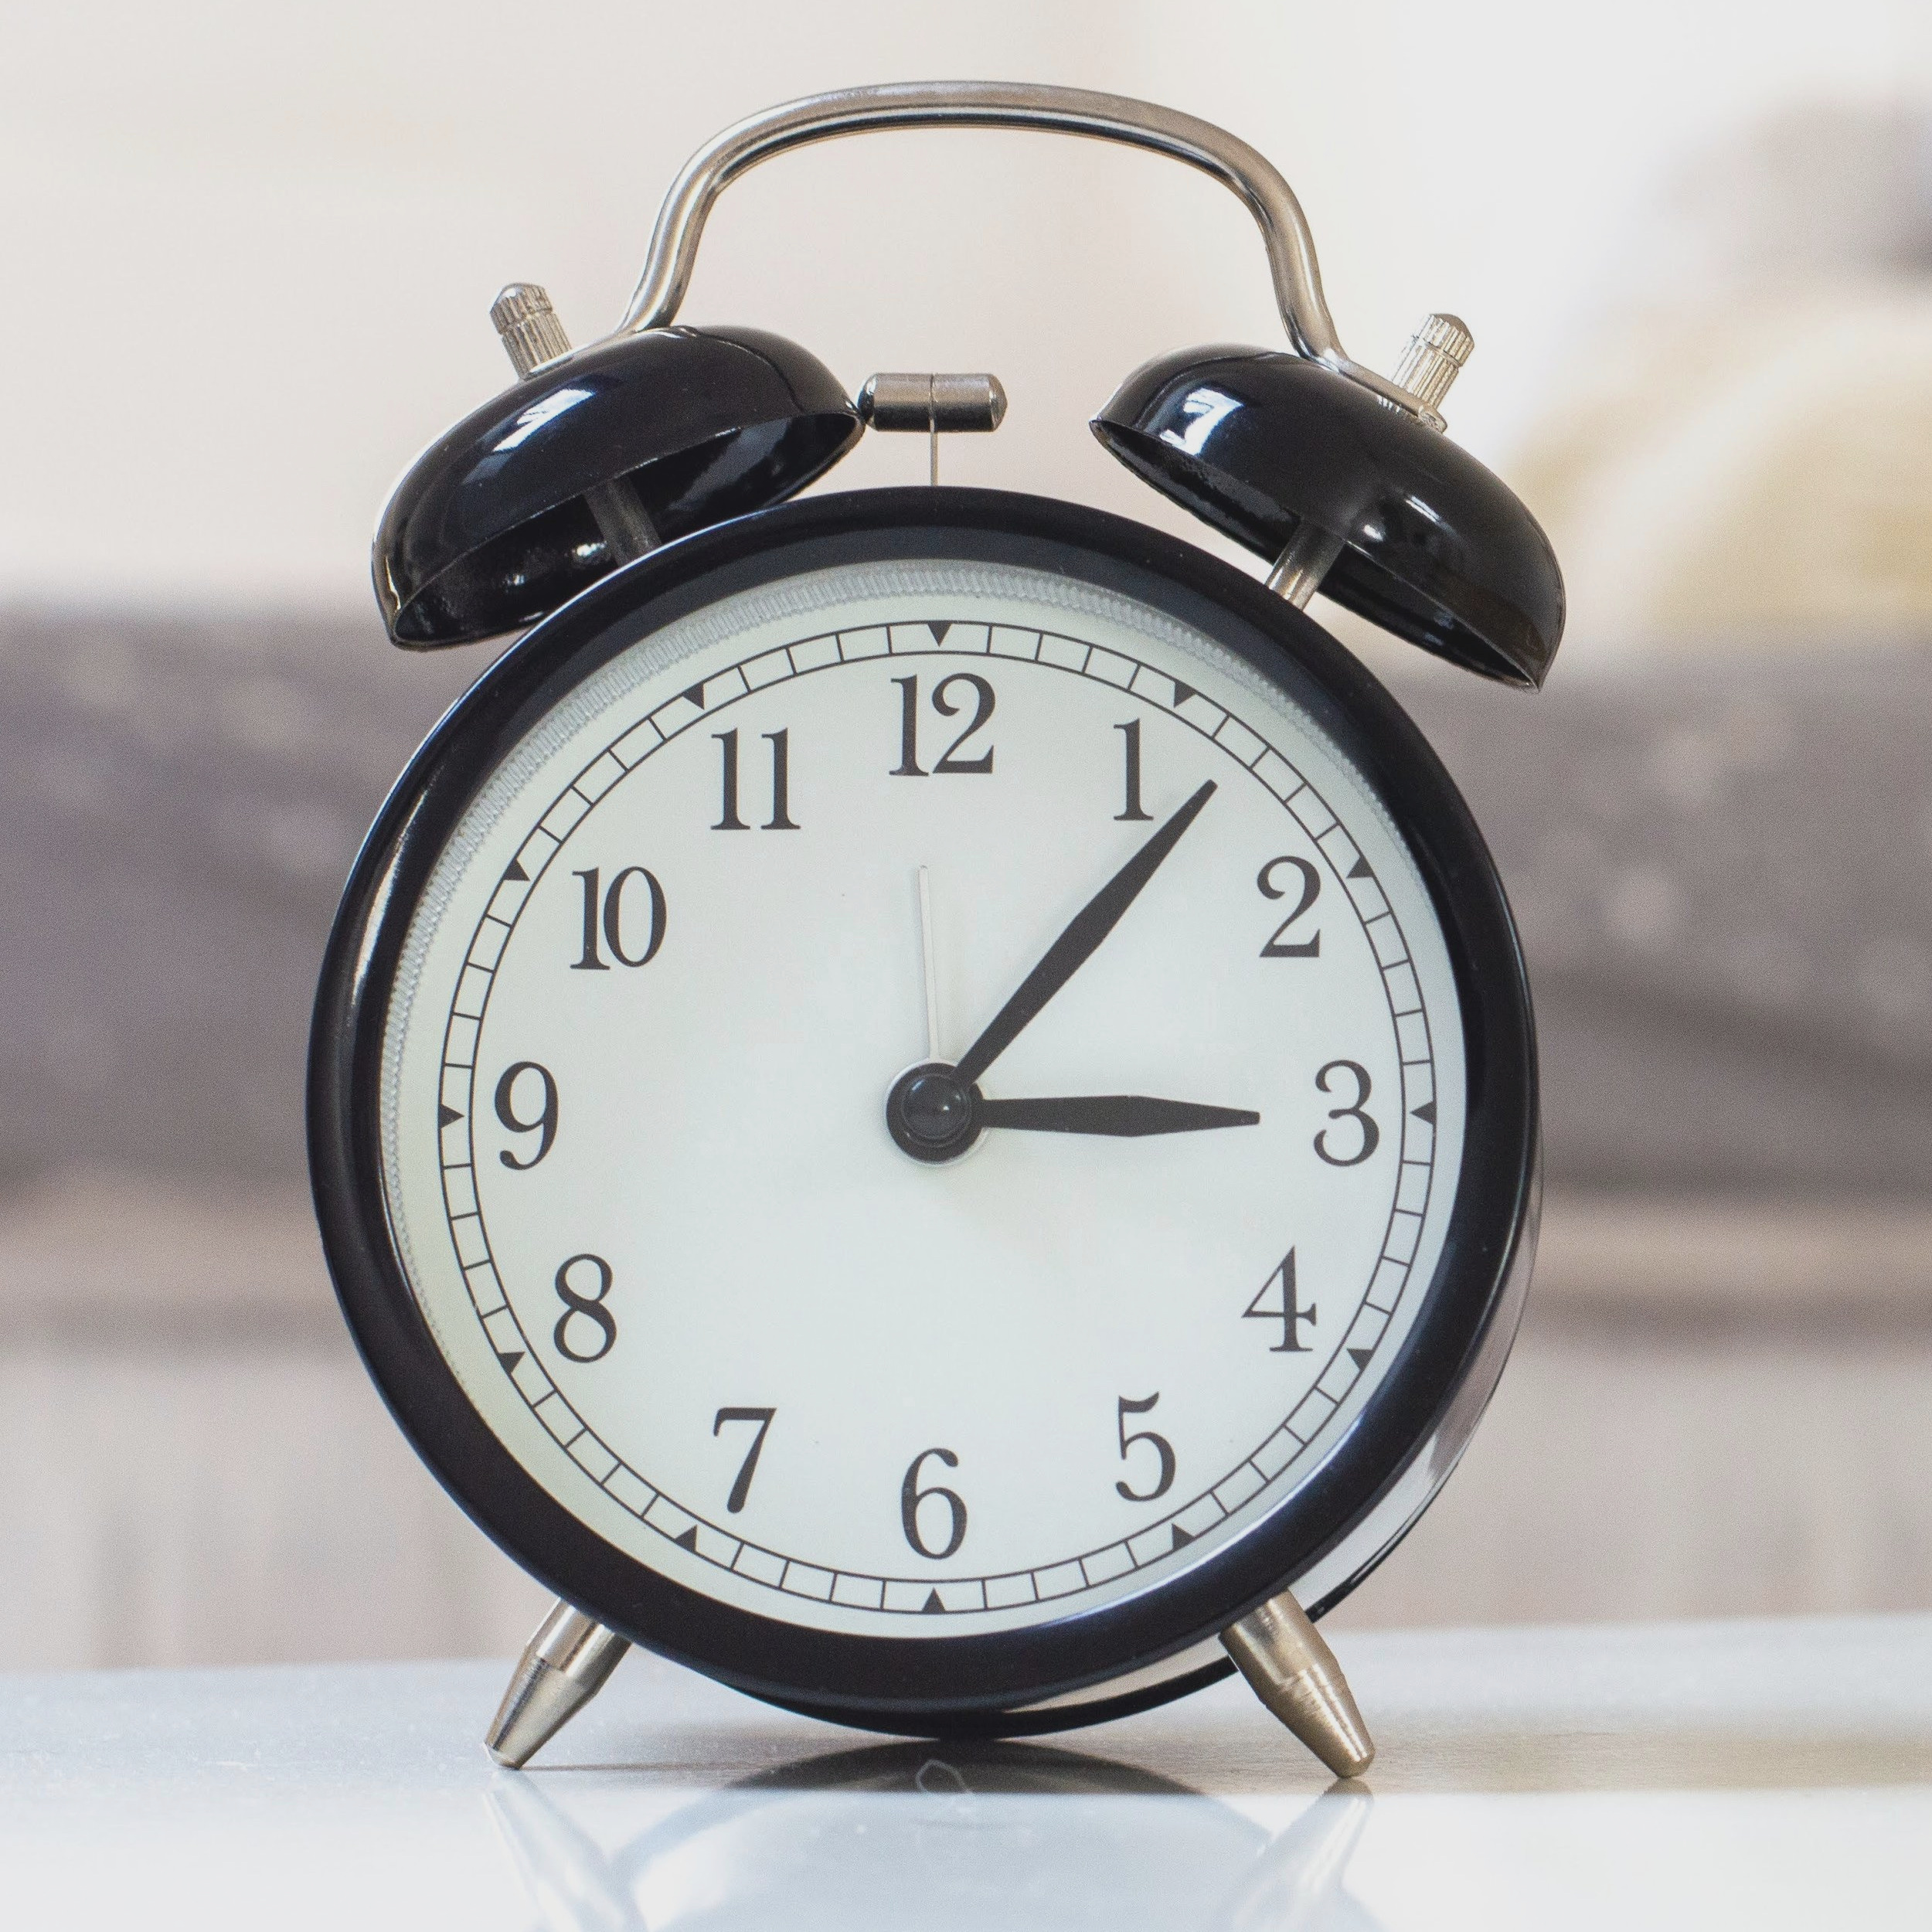 alarm-clock-blurred-background-clock-1449900.jpg